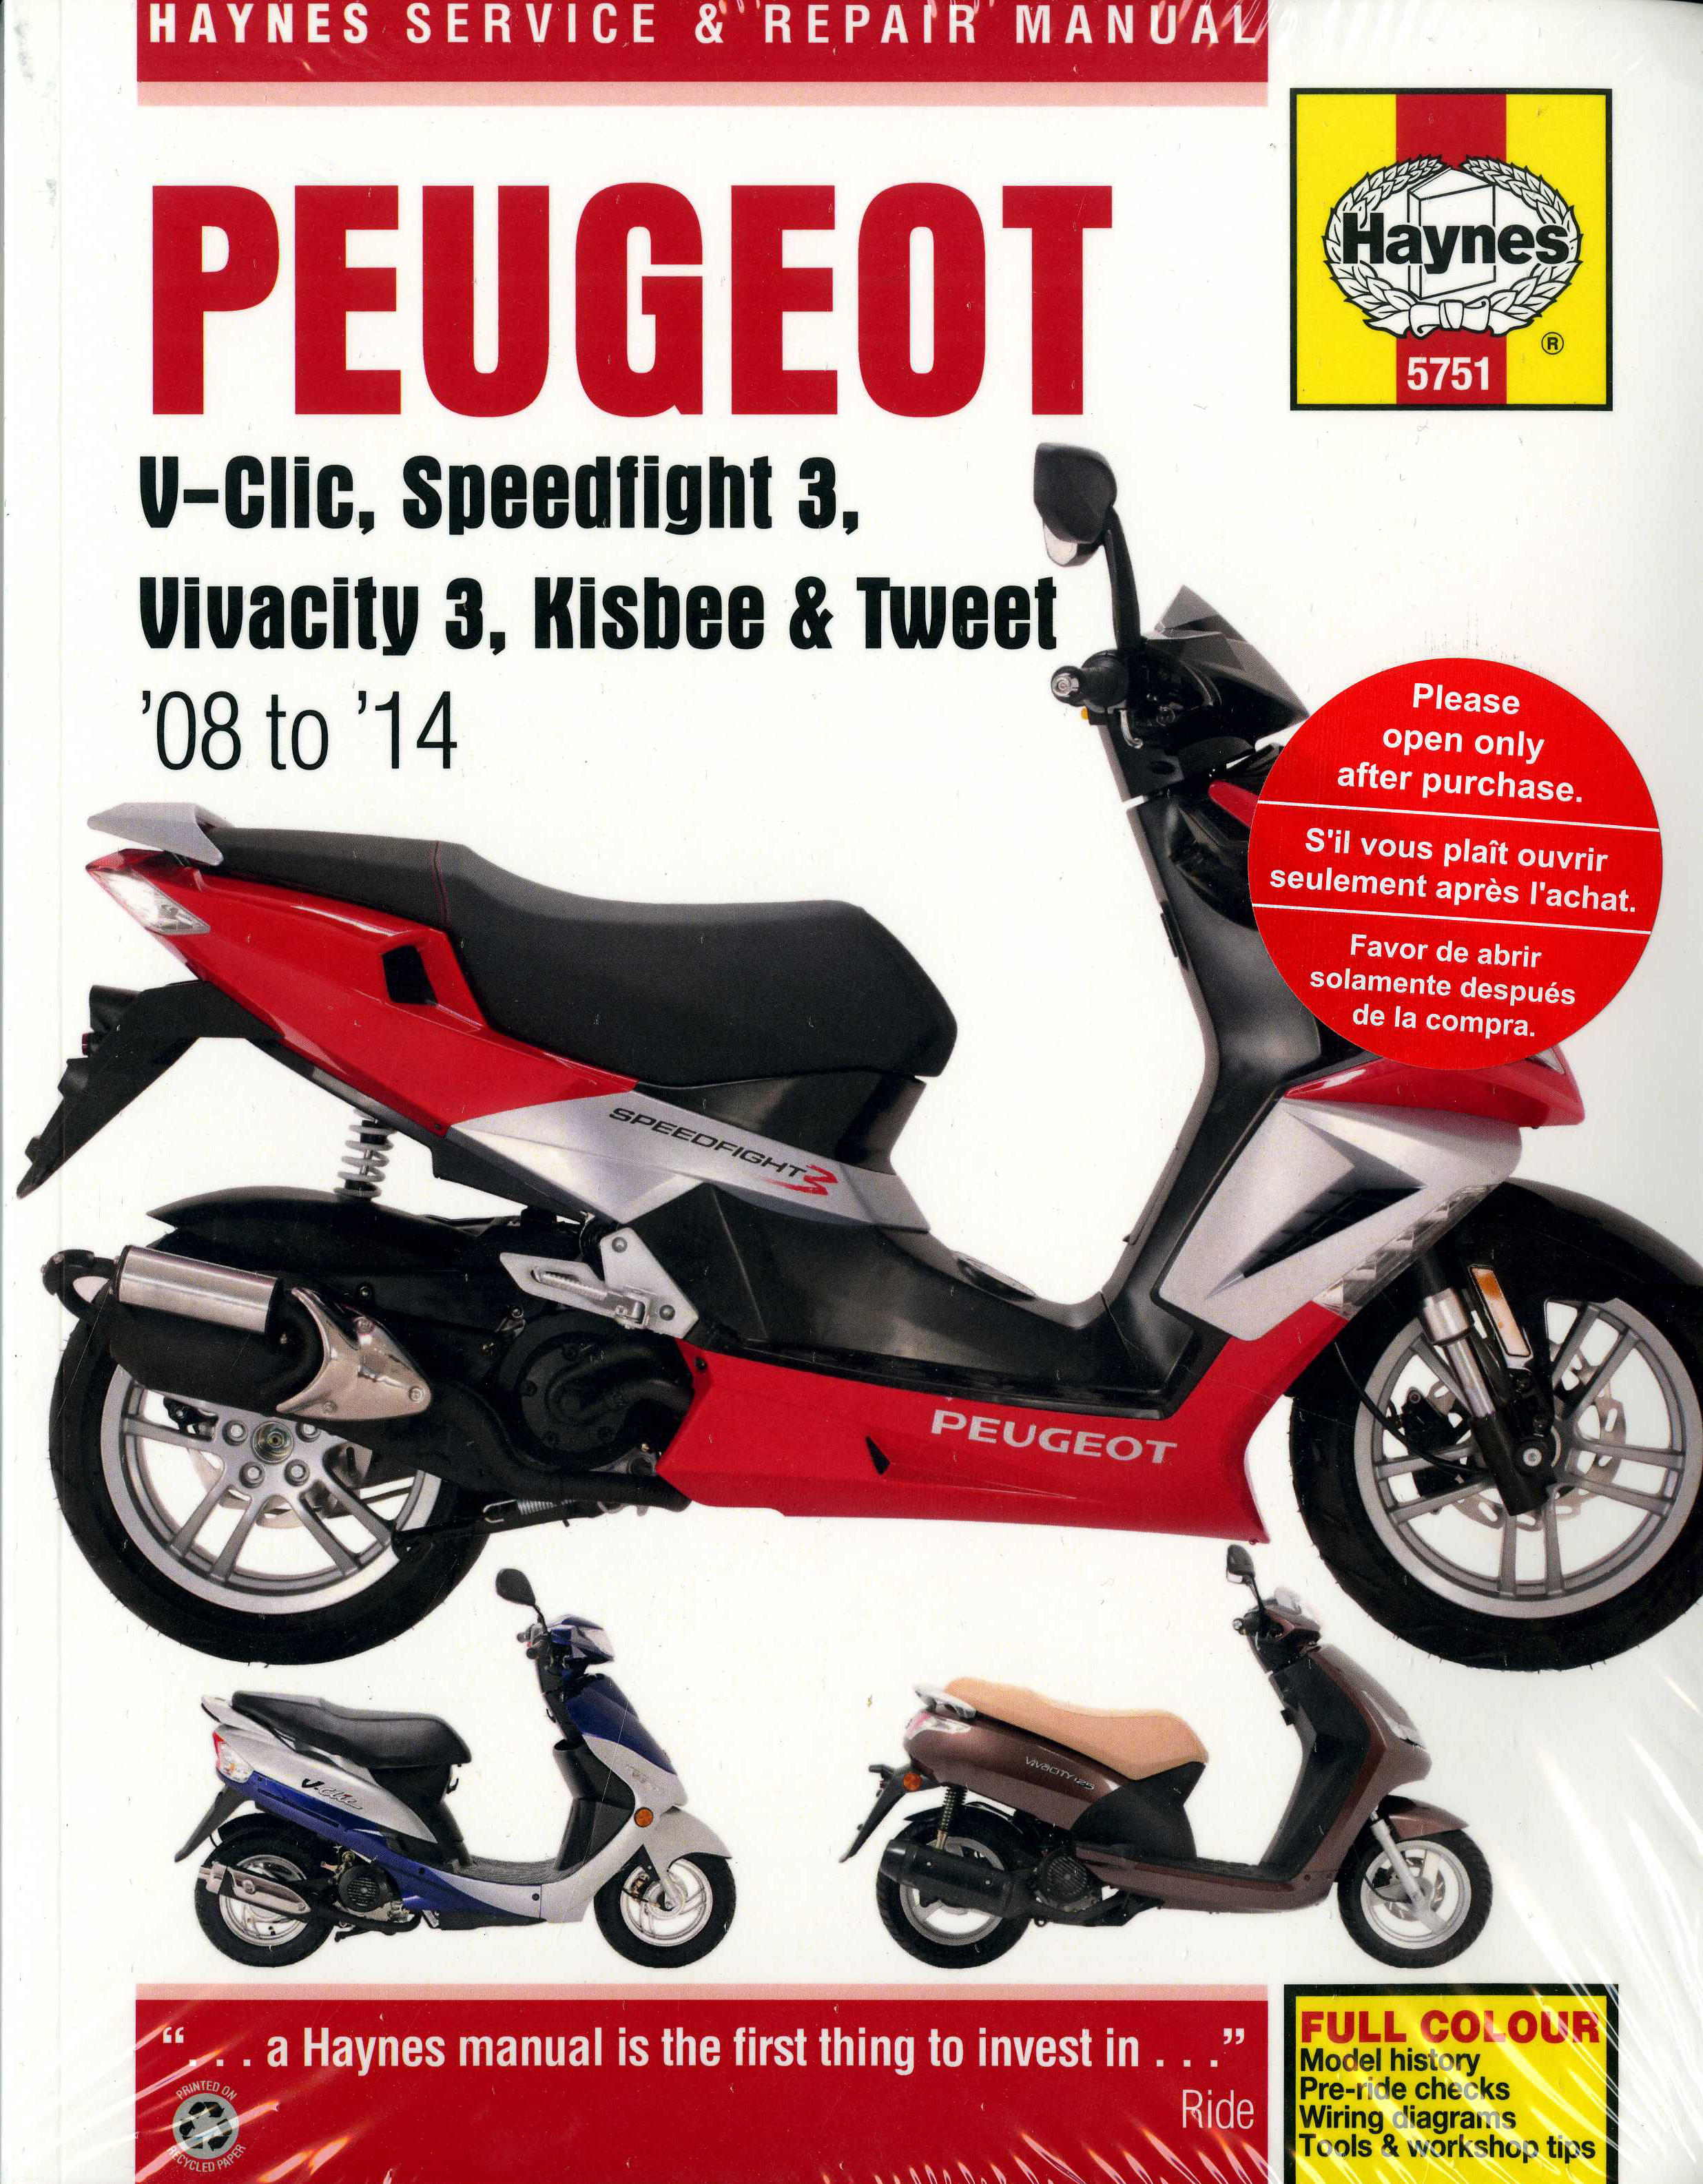 peugeot v clic speedfight 3 vivacity 3 kisbee tweet 08 to 14 rh scooterproducts com